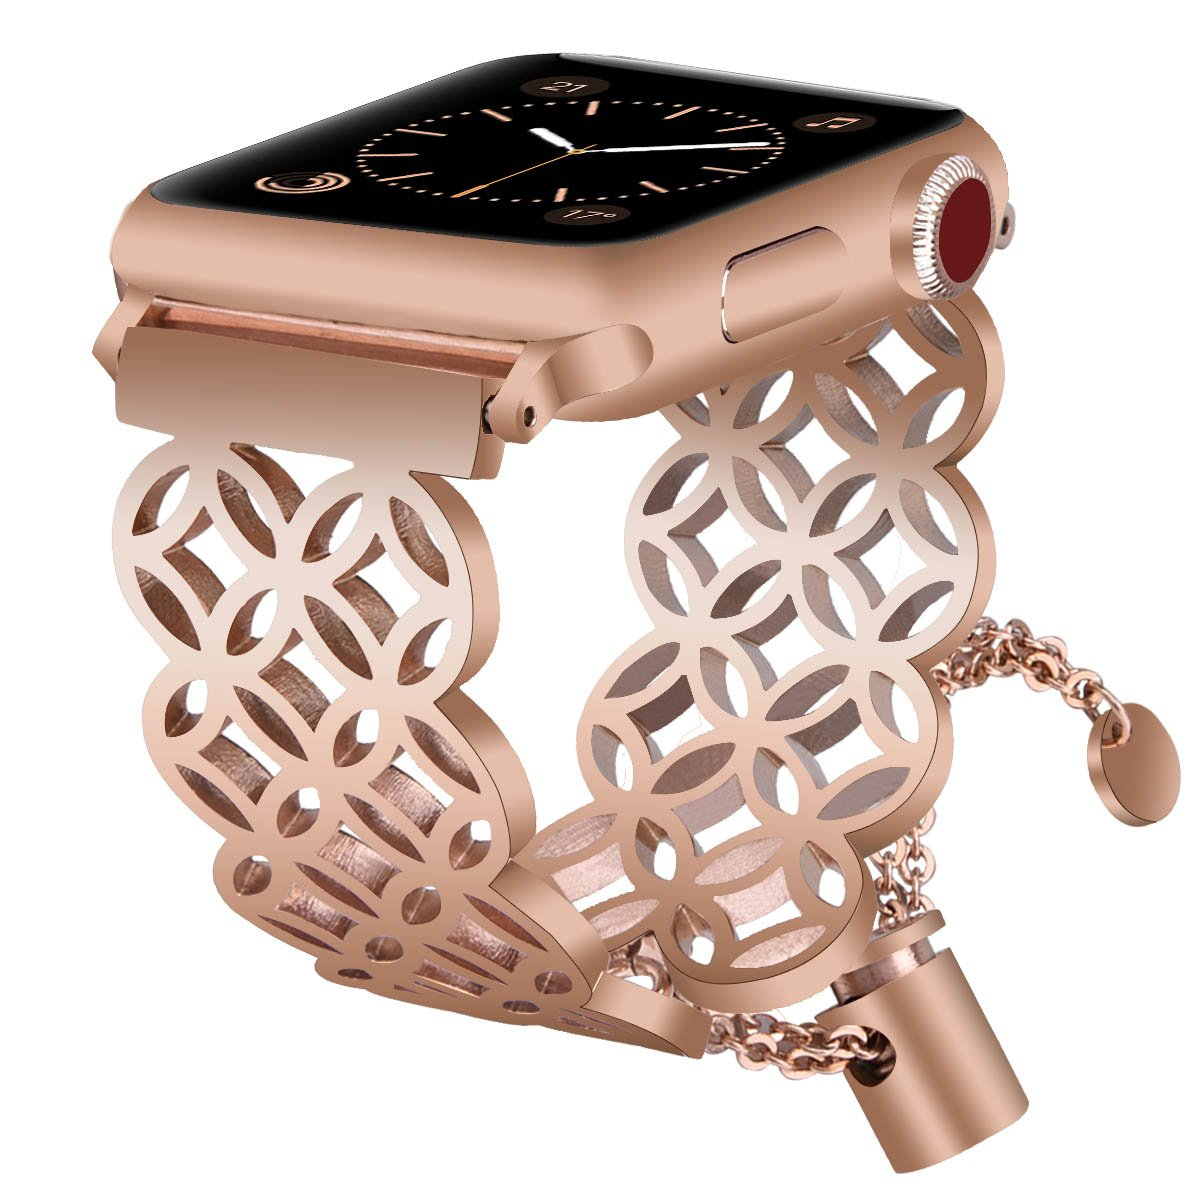 Apple Watch Band 42mm Women Men, VIGOSS Luxury Apple Watch Rose Gold Bands Jewelry Cuff Edition Bling Hollow Hoop Bracelet Stainless Steel Bangle Strap for iWatch Series 3/2/1,Nike+ (Window grille)